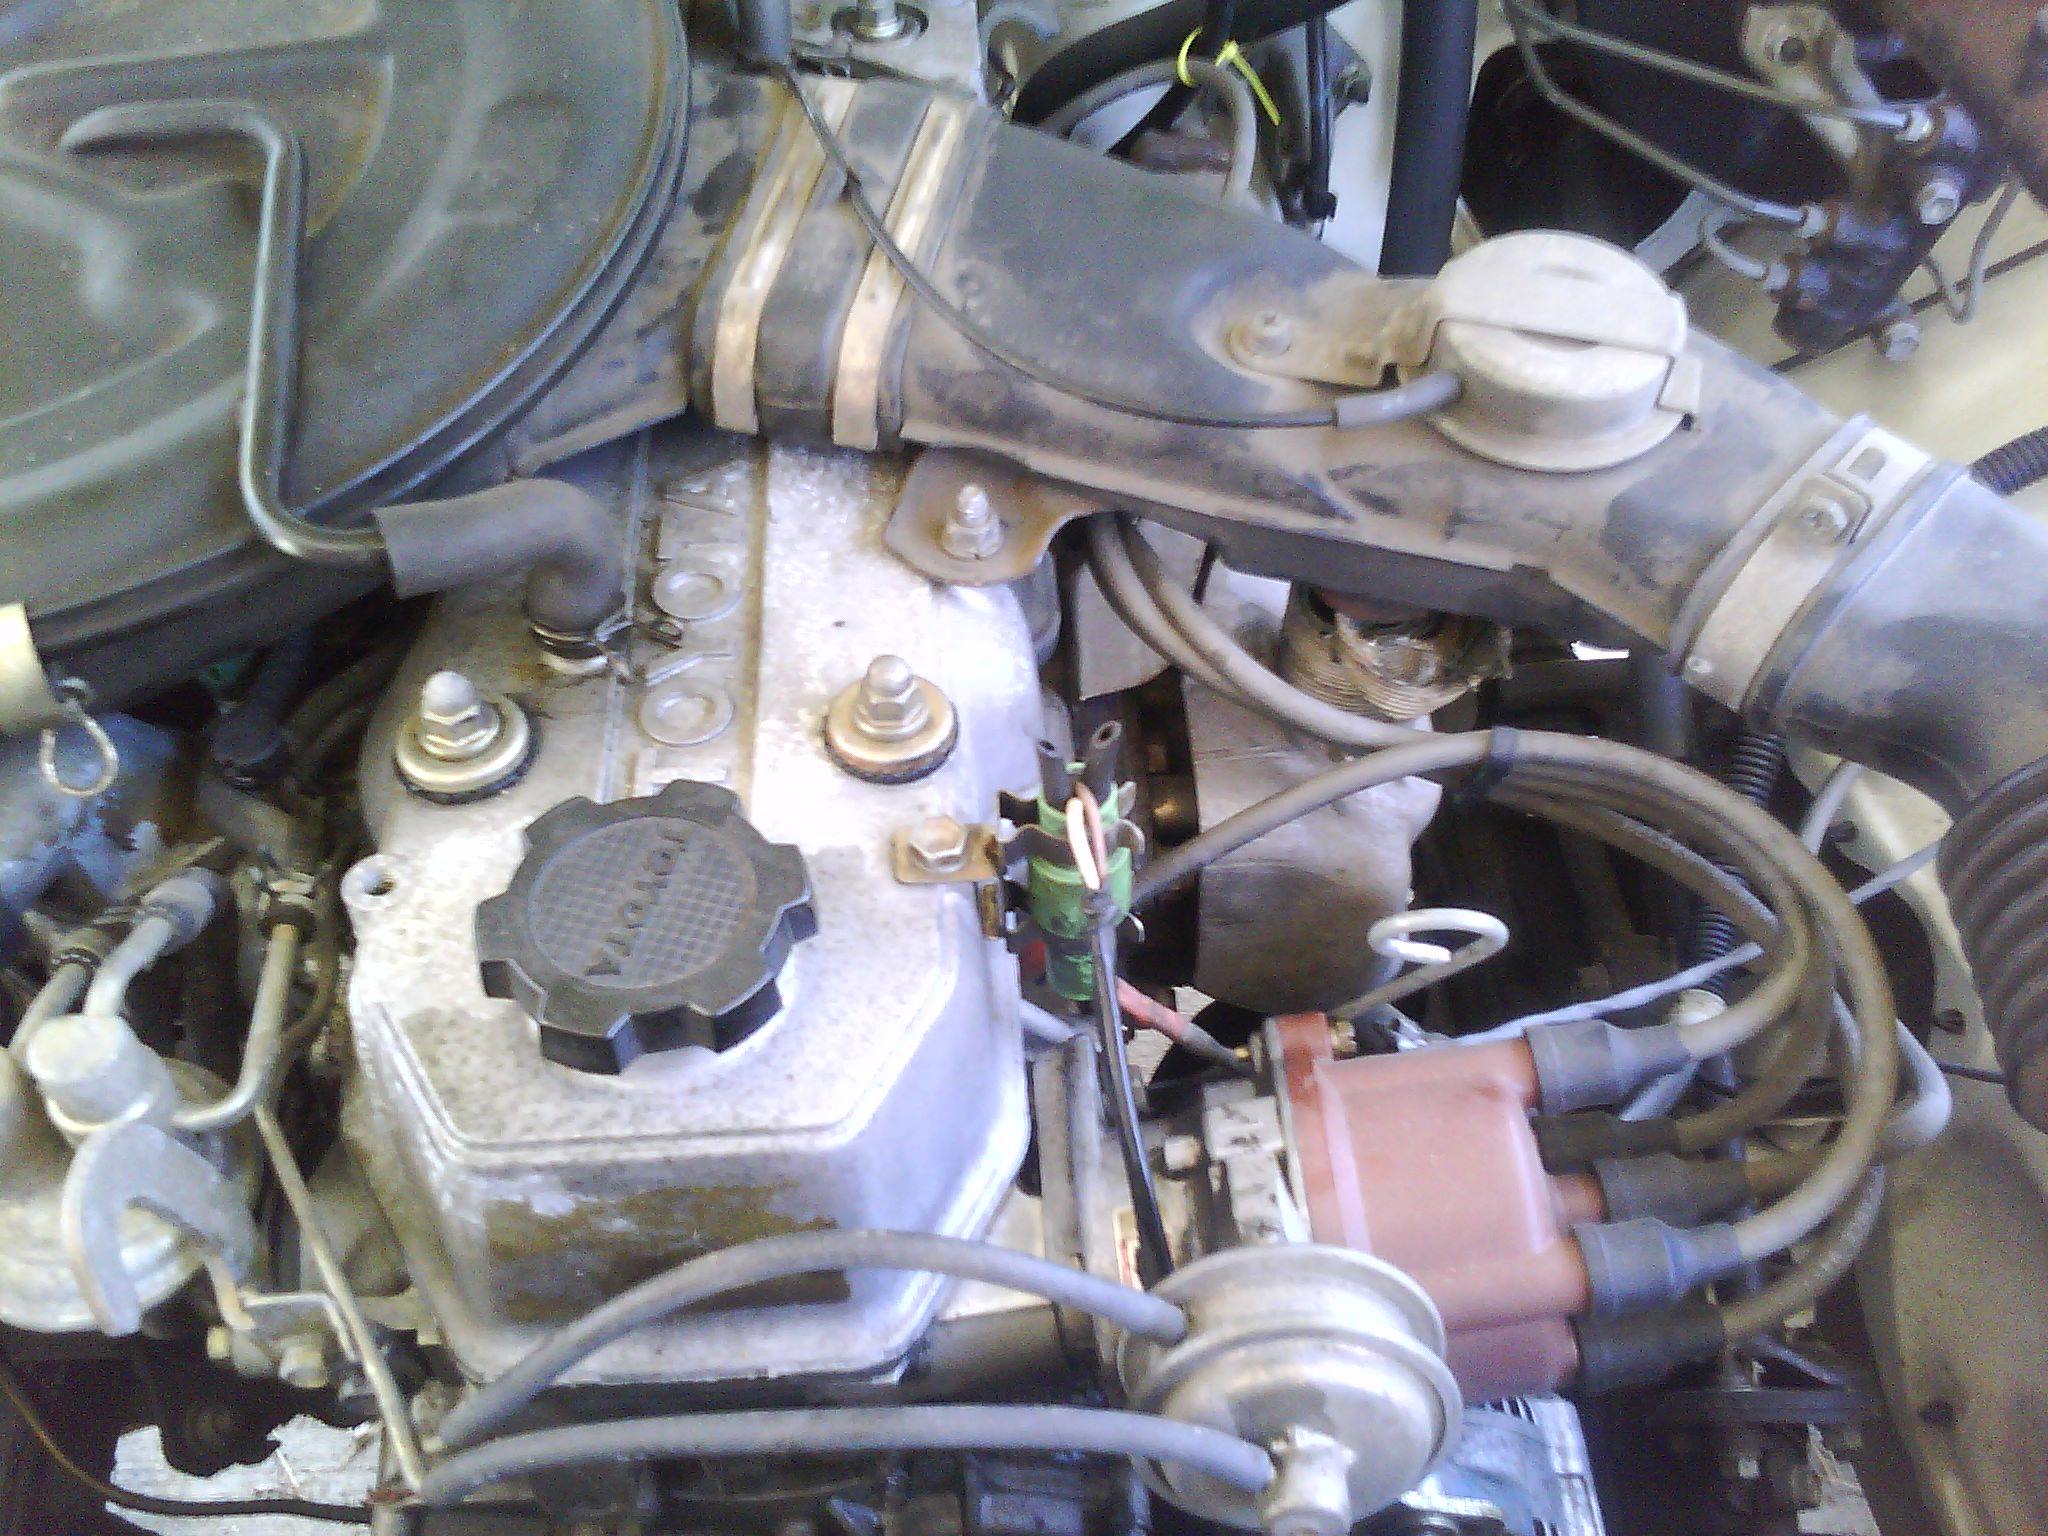 ym_4342] 1986 toyota truck fuel filter download diagram  bupi phot ndine aryon hapolo mohammedshrine librar wiring 101